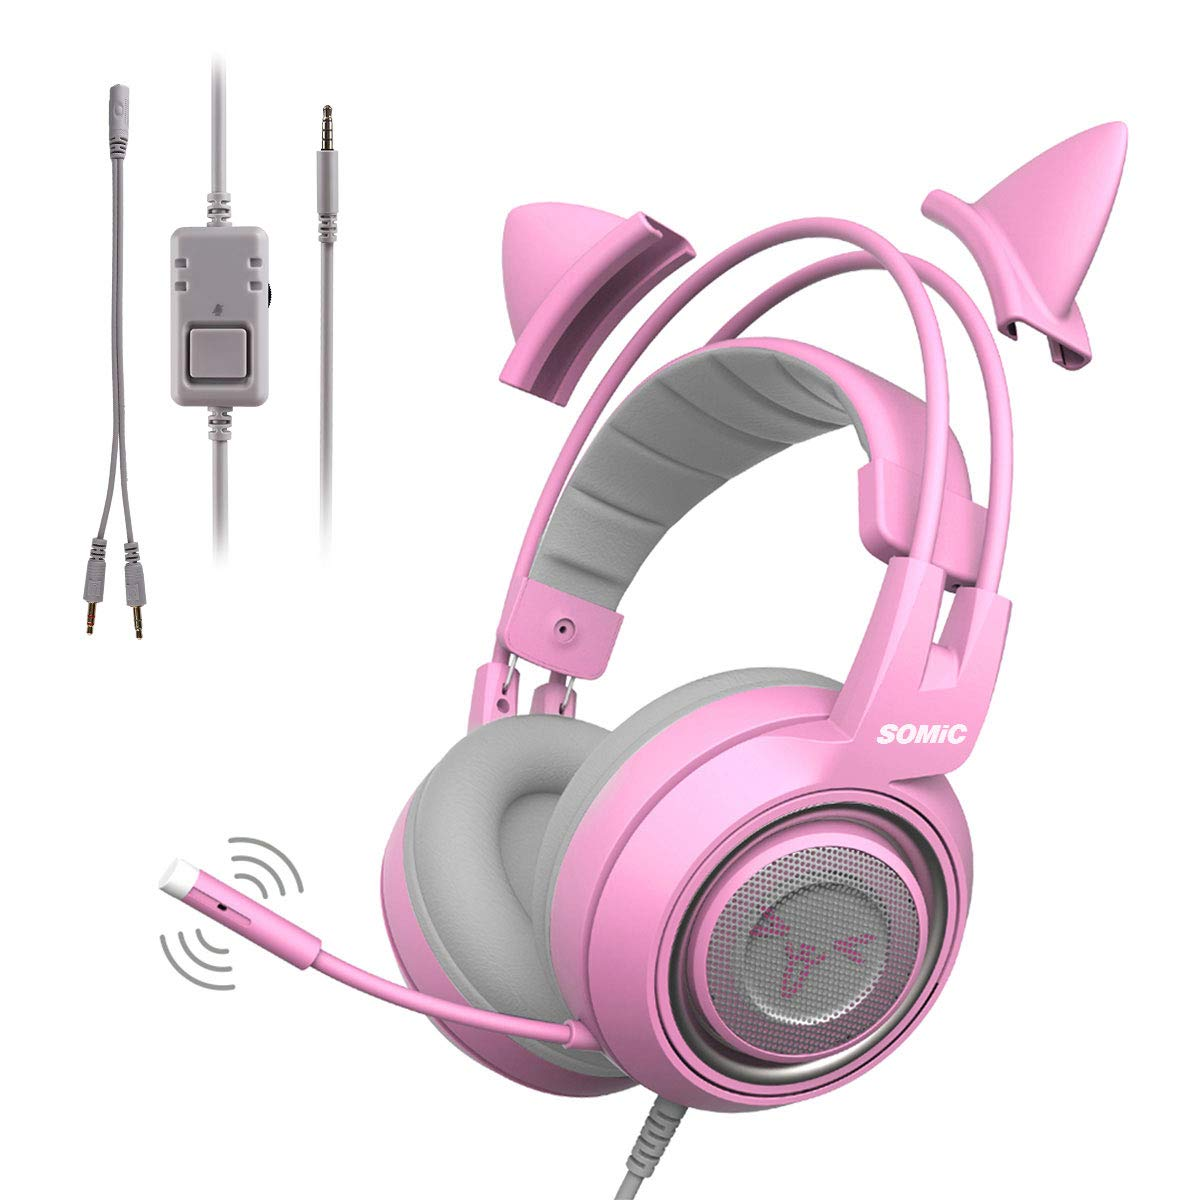 SOMIC G951s Pink Stereo Gaming Headset with Mic for PS4, Xbox One, PC, Mobile Phone, 3.5MM Sound Detachable Cat Ear Headphones Lightweight Self-Adjusting Over Ear Headphones for Women by SOMIC